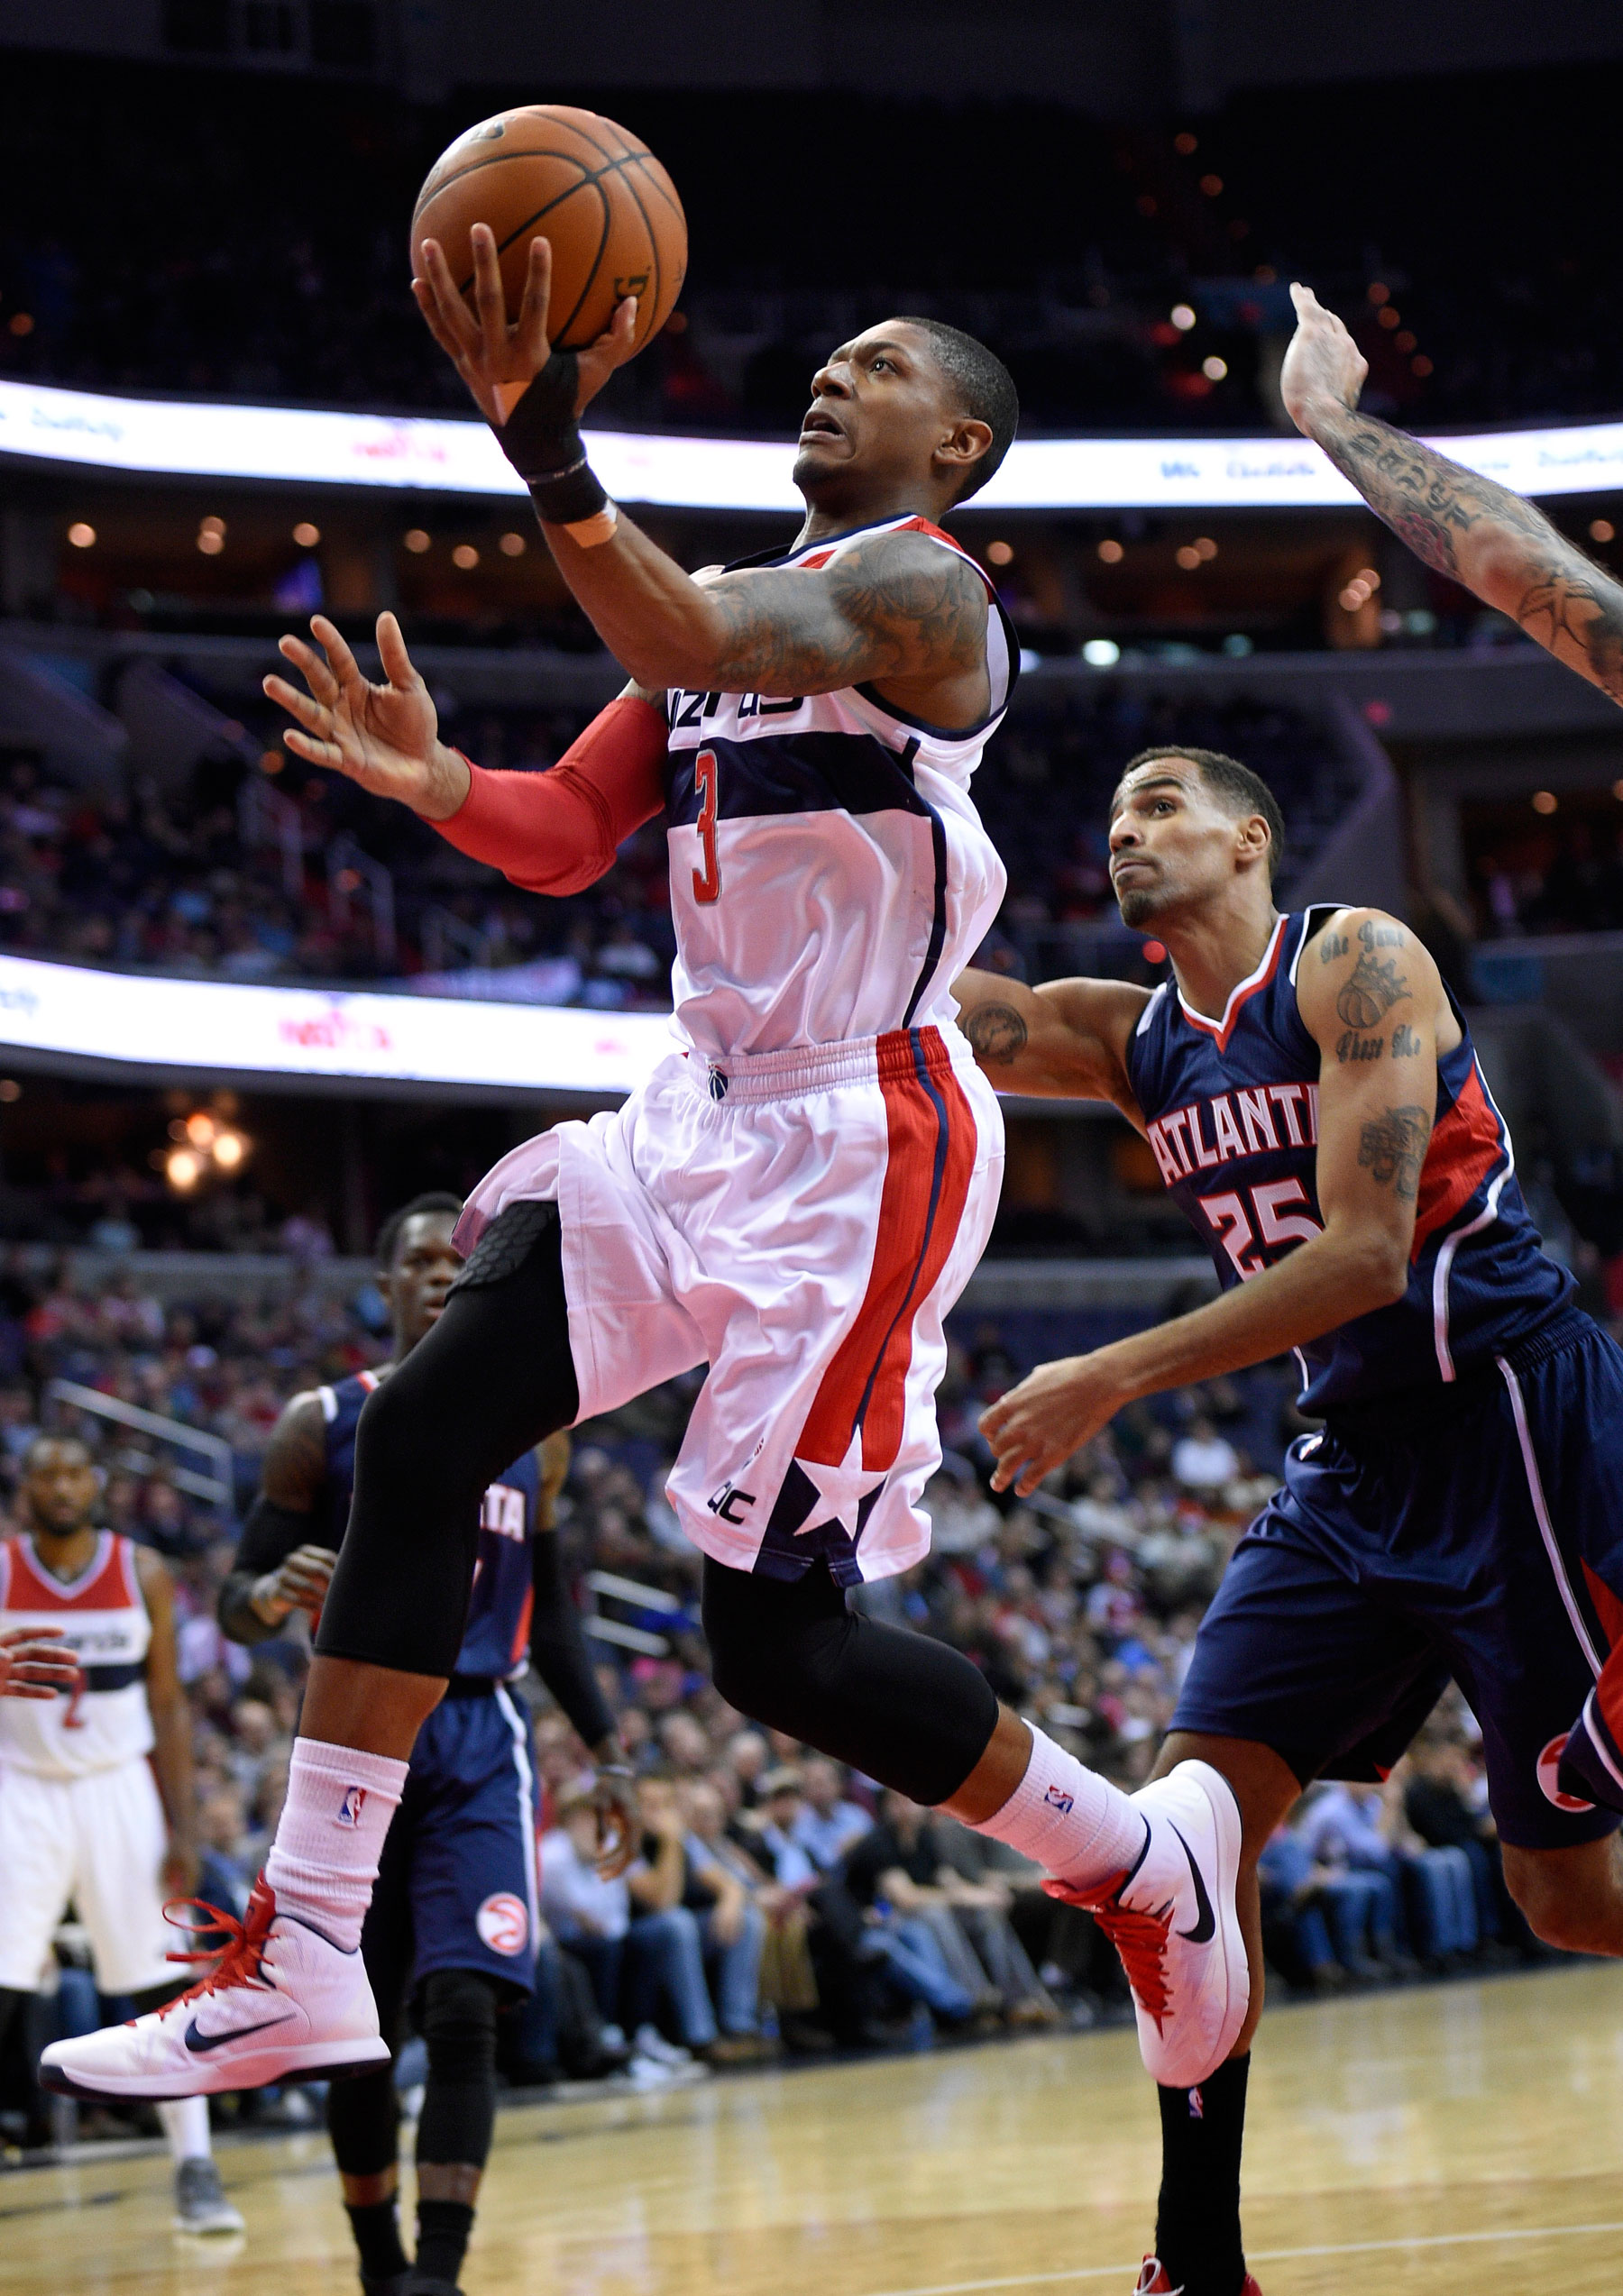 Ferguson unrest is personal for Wizards' Beal